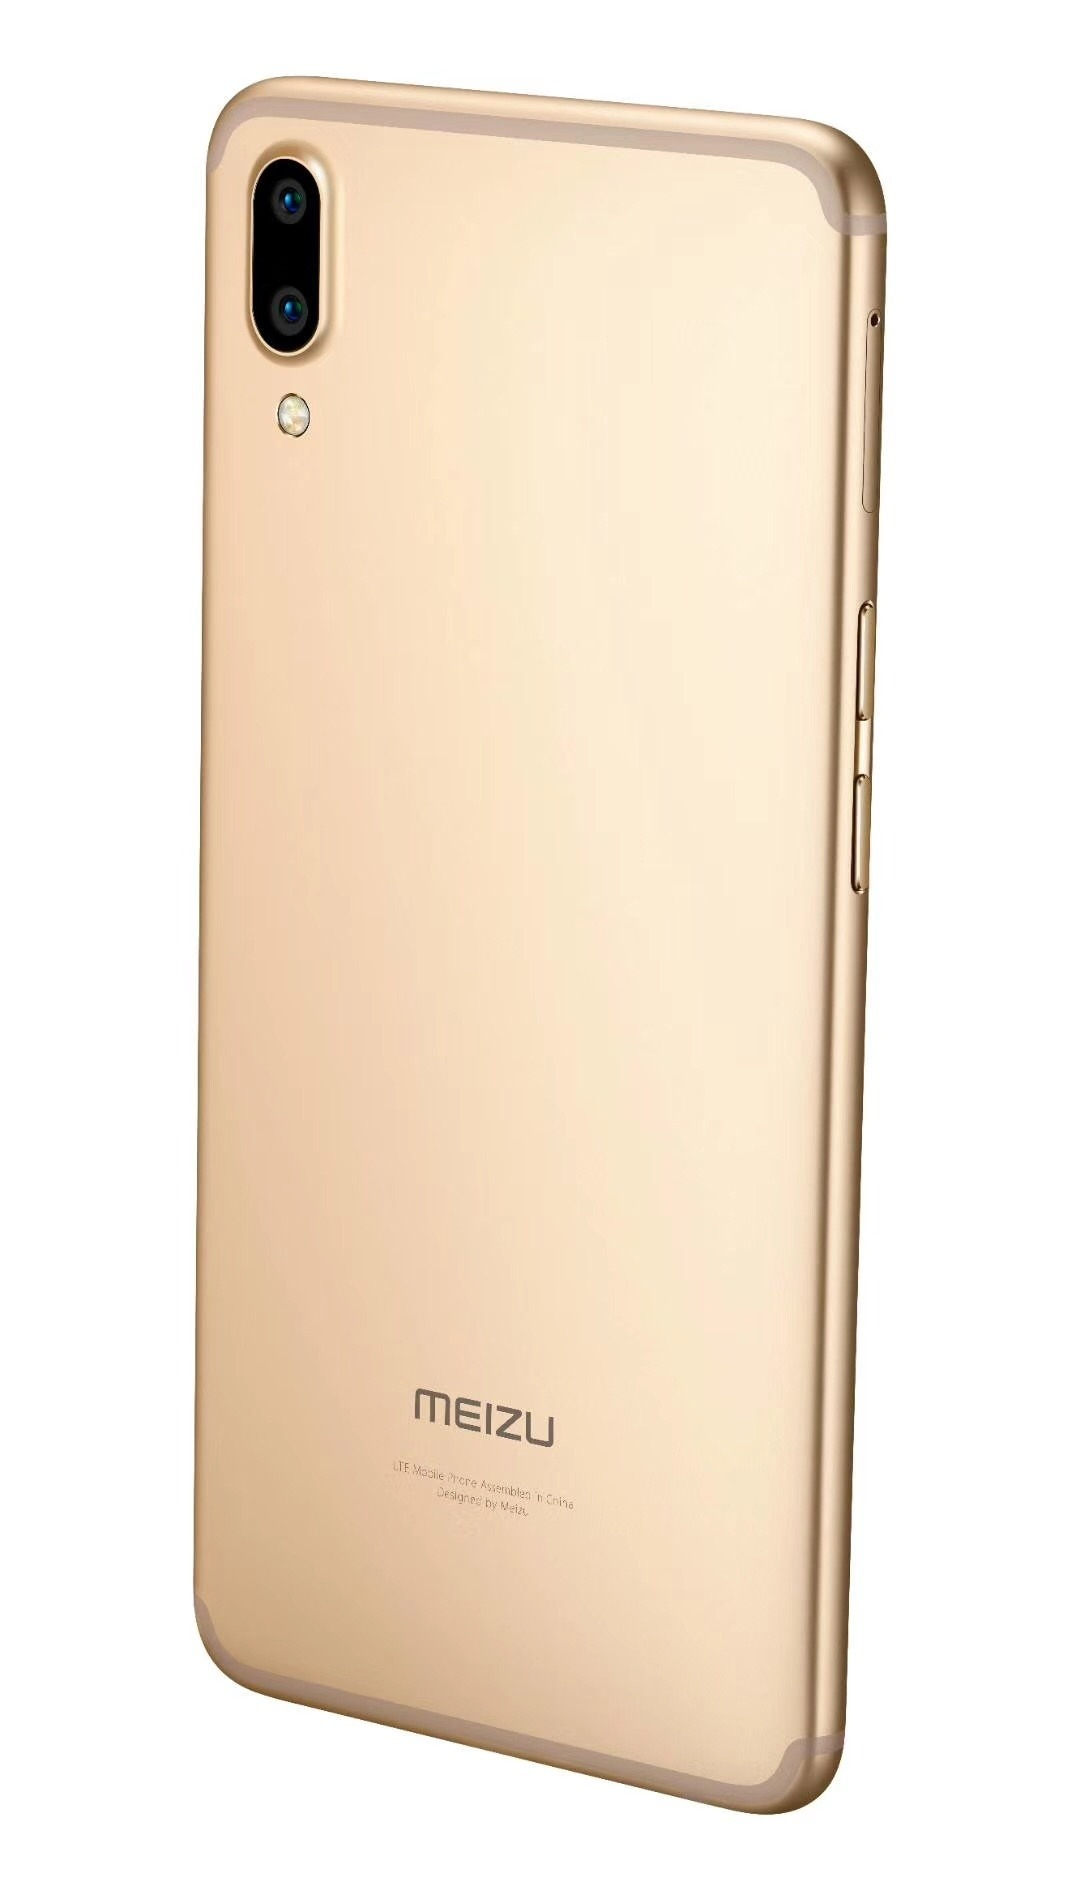 Meizu E3 is coming with an 18:9 display & dual camera setup for 2,299 Yuan 5